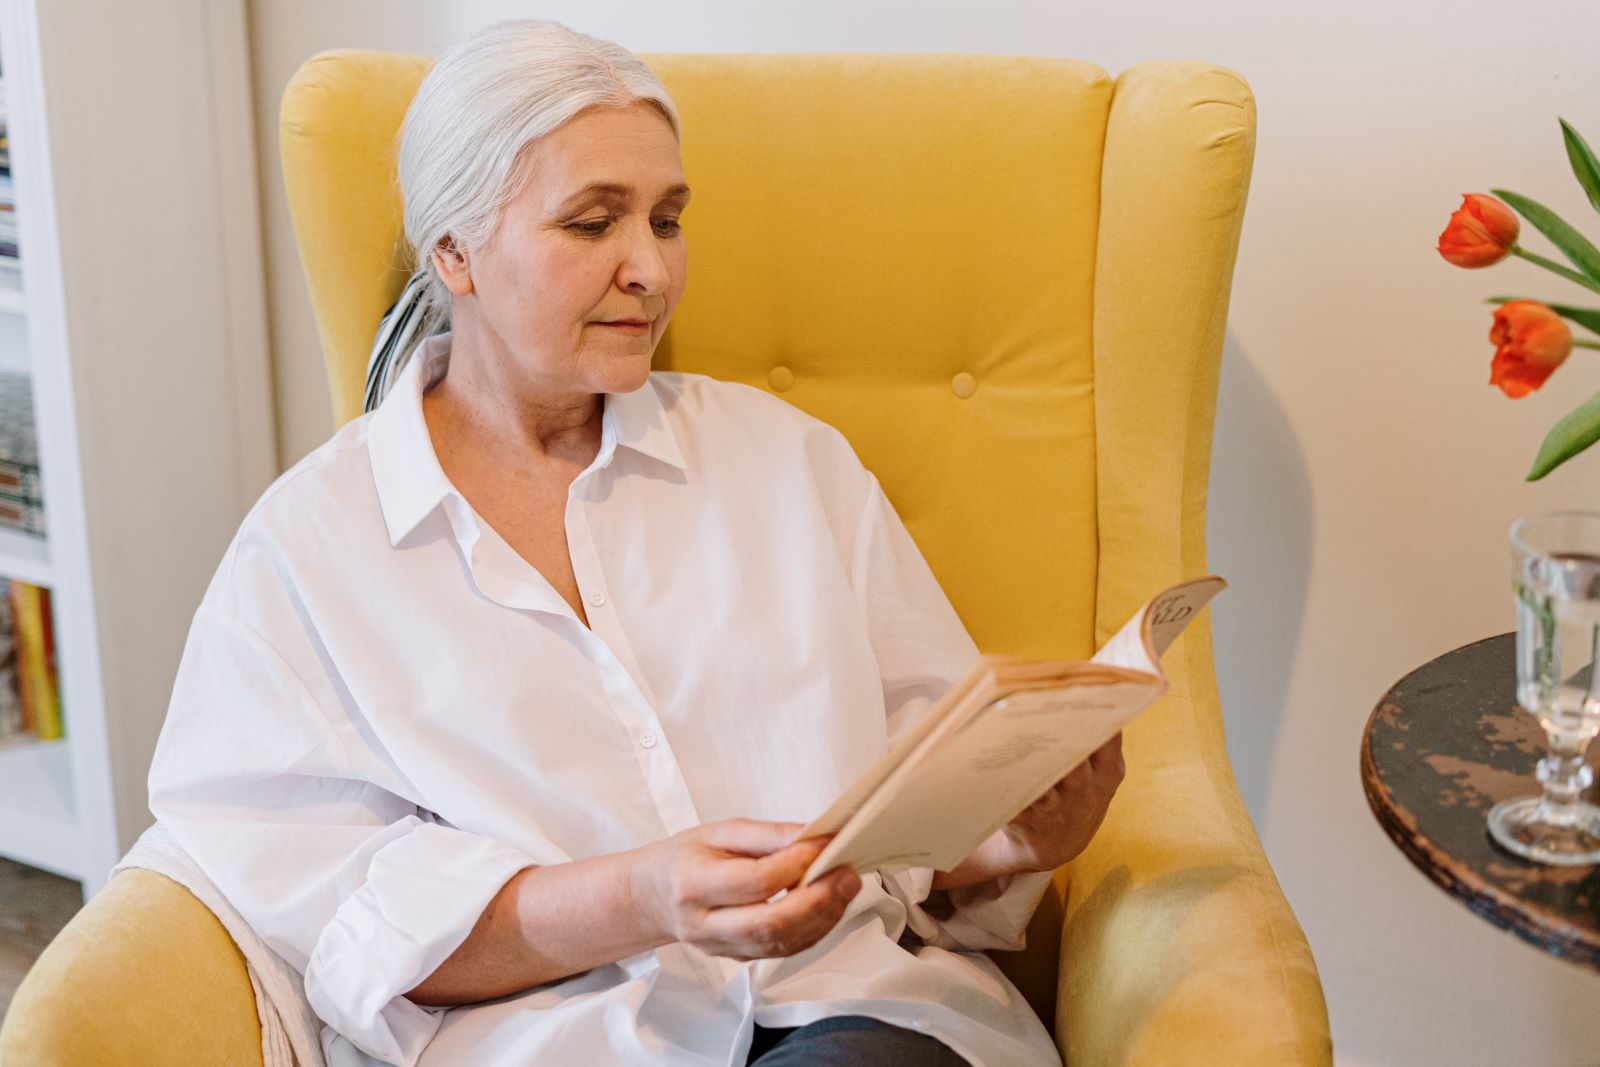 7 Ways Seniors Can Improve Brain Health Without Pills - Senior woman sitting in yellow chair reading a book